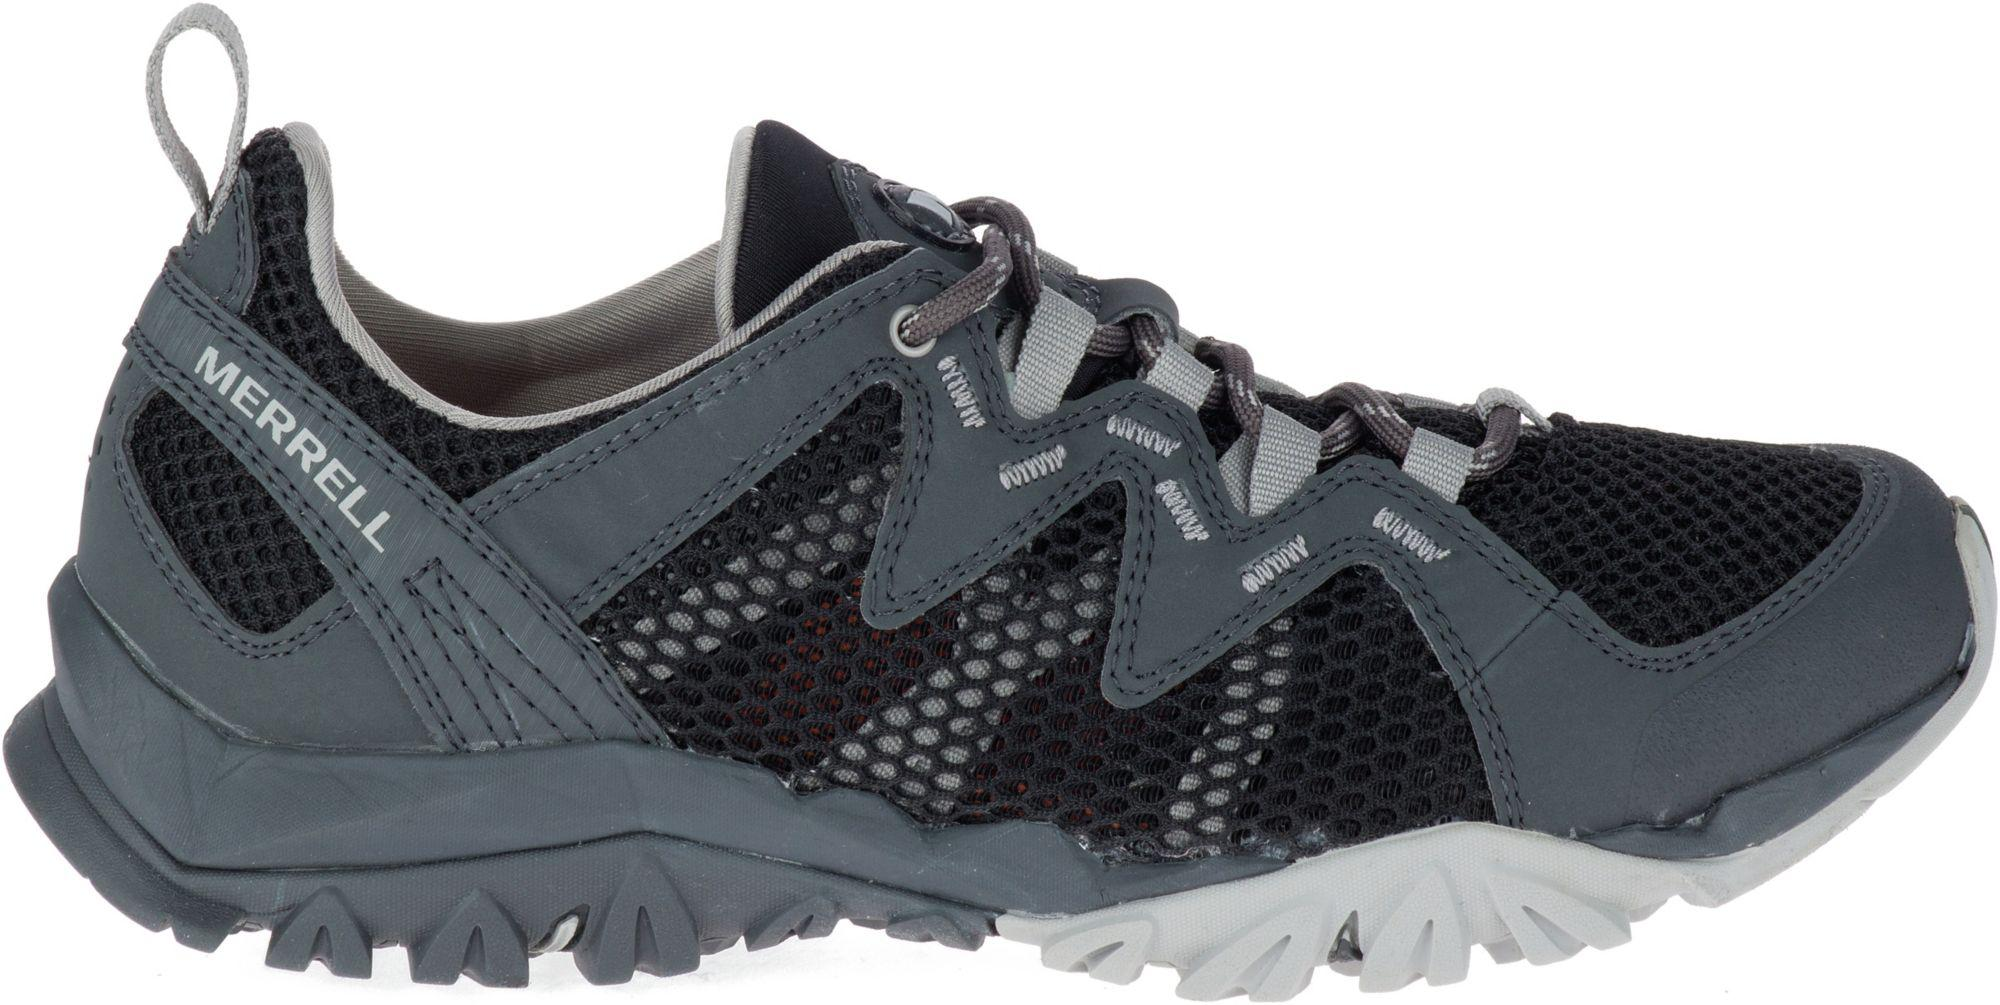 047dc2a841ff Lyst - Merrell Tetrex Rapid Crest Water Shoes in Black